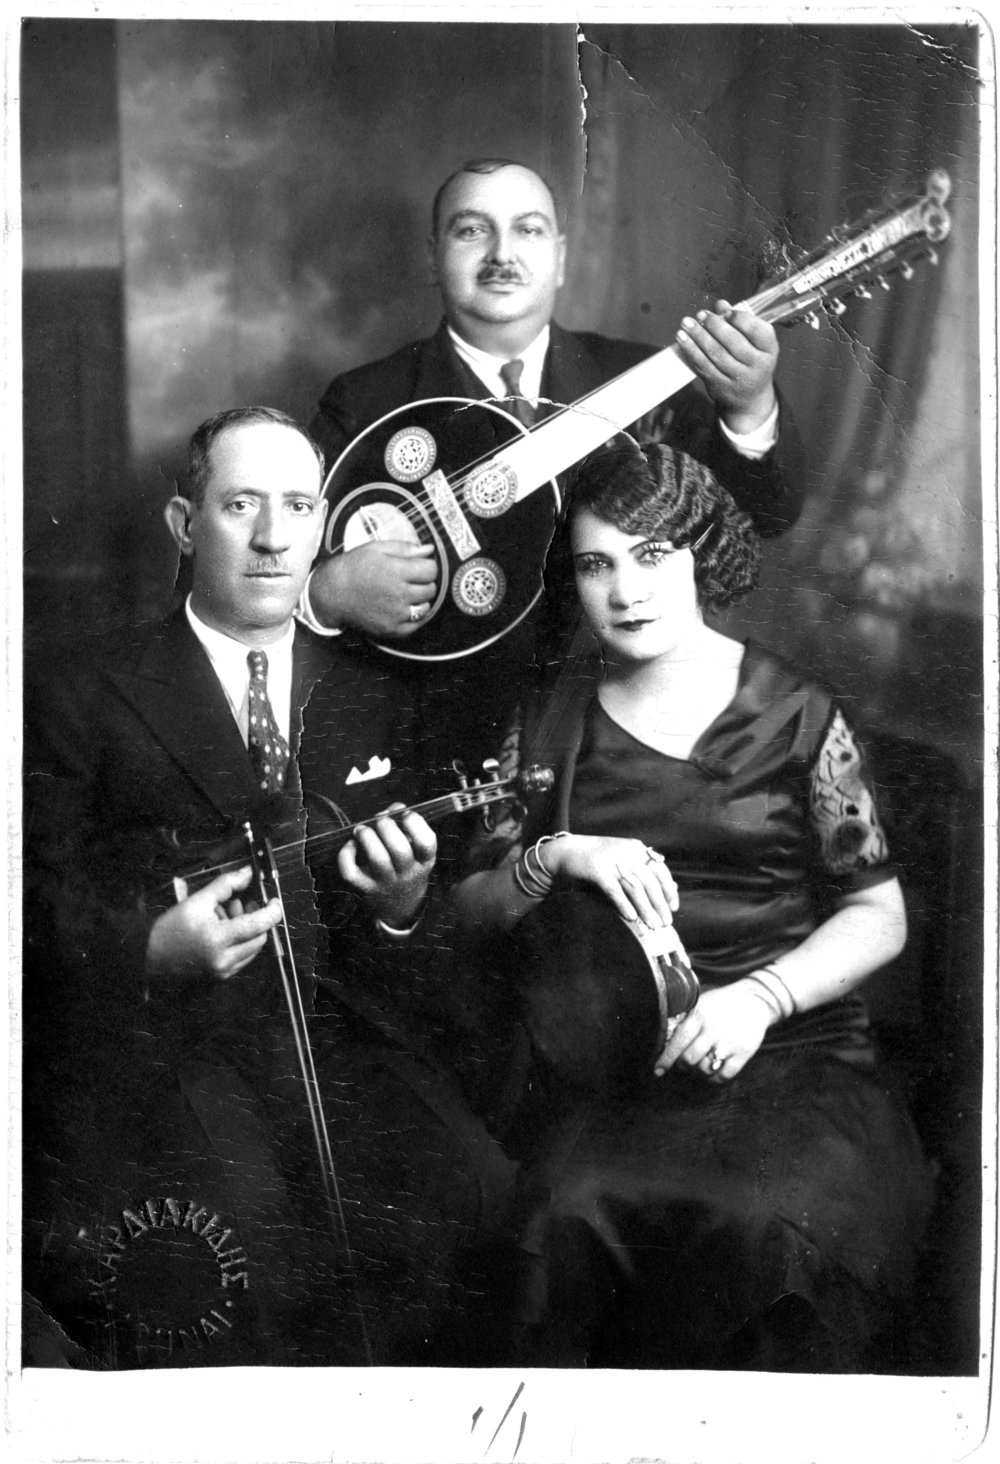 Rosa Eskenazi, legendary Jewish-Greek rebetiko singer and subject of Roy Sher's My Sweet Canary.